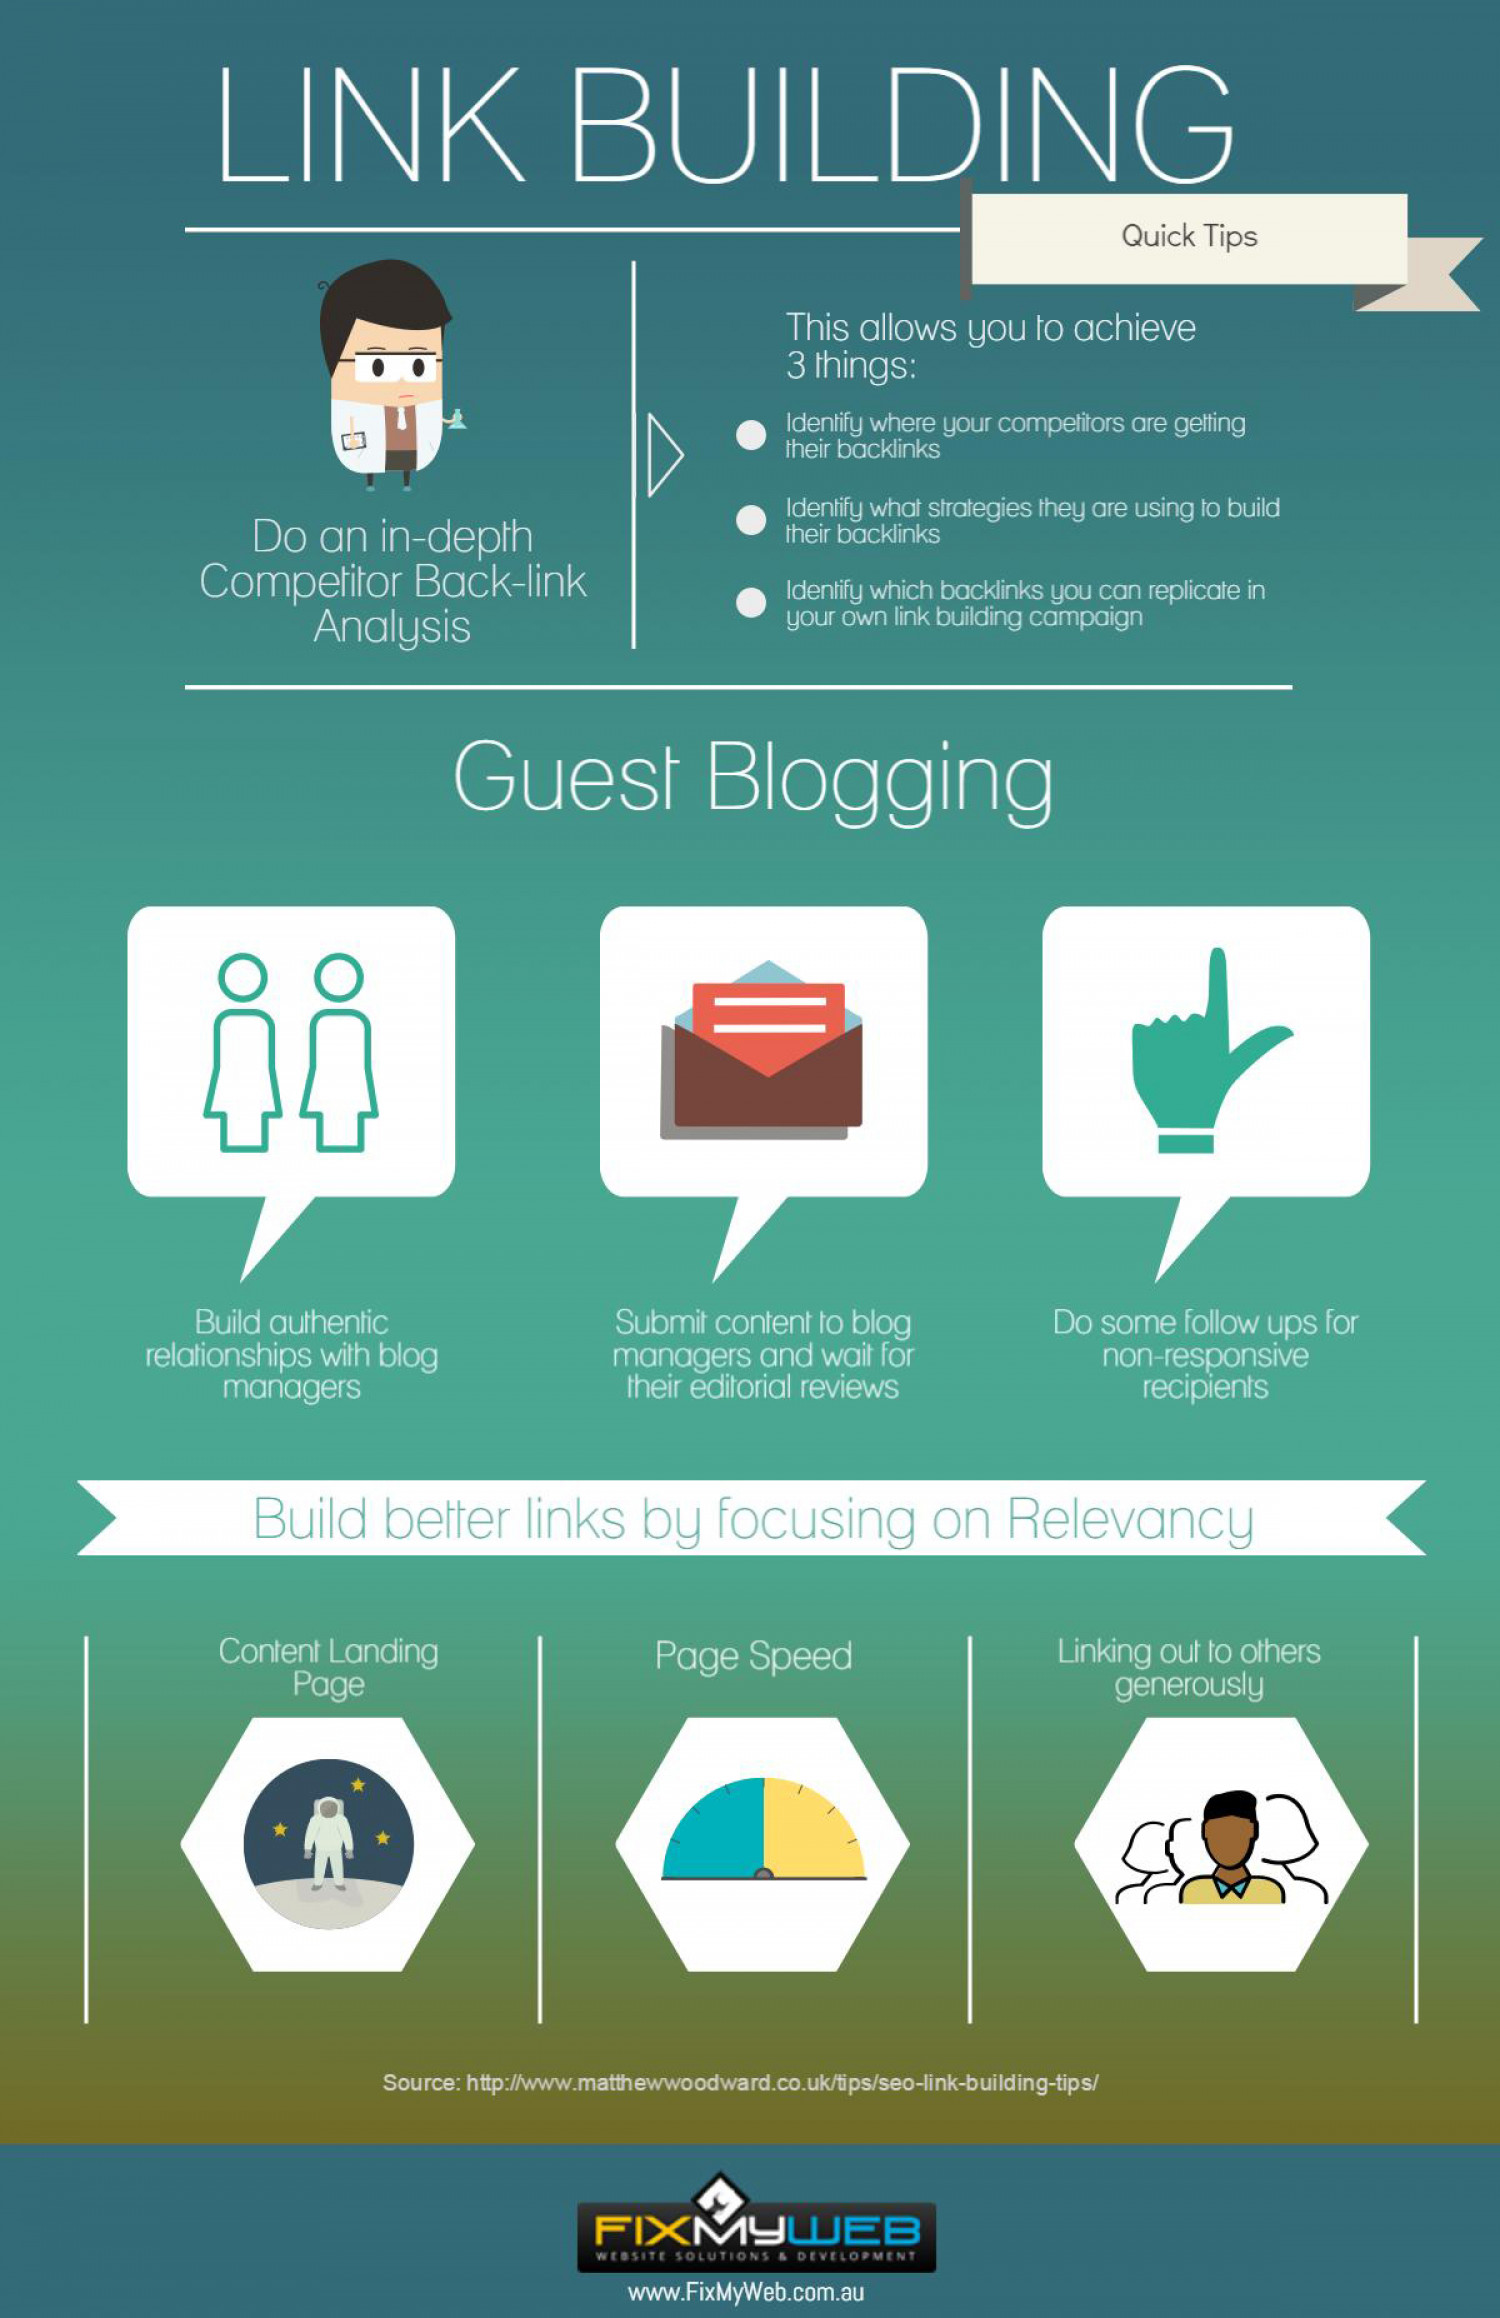 Link Building Tips Infographic